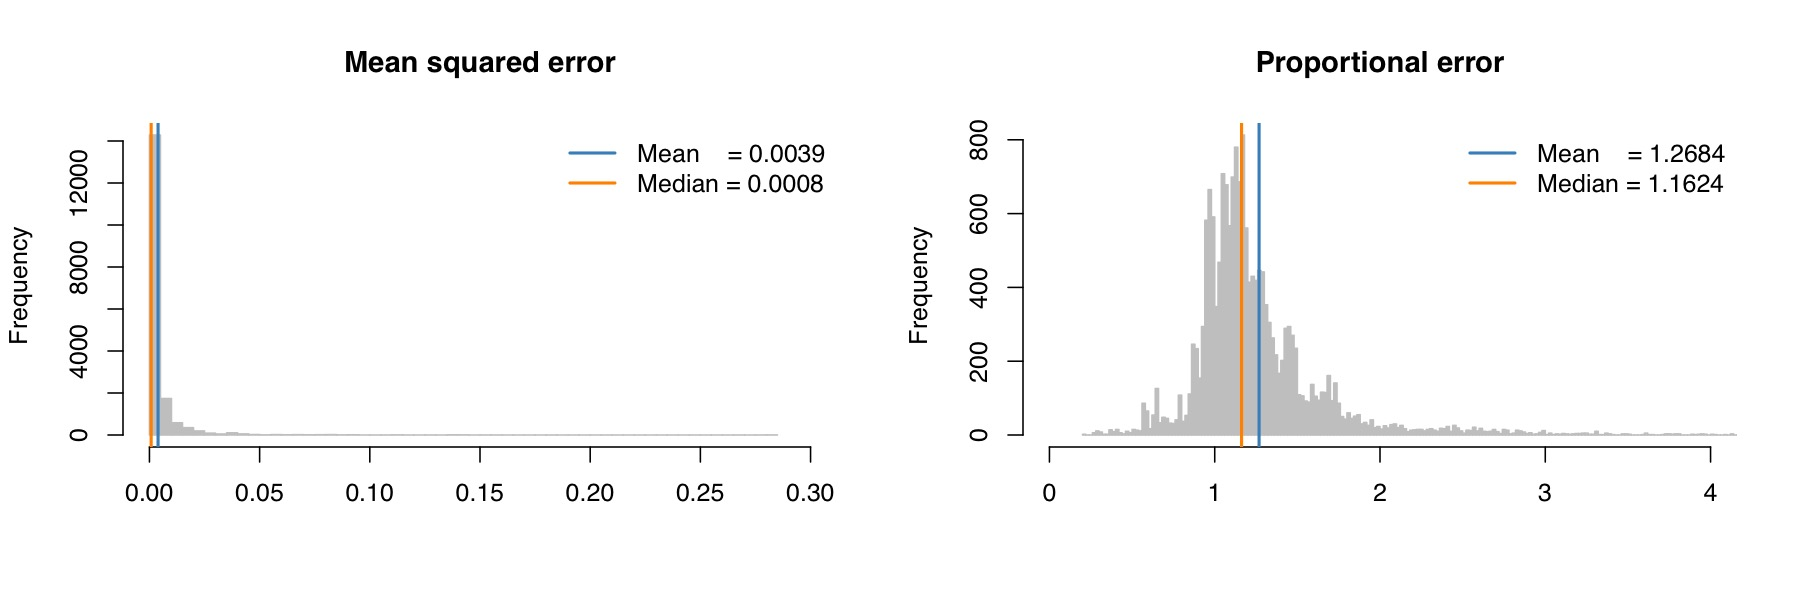 "Figure 8. Error in speciation-rate estimates using the ""random"" option implemented in BAMM. We analyzed the 100 rate-variable trees published in Moore et al. (2016) using the ""combineExtinctionAtNodes = random"" option with an expected number of diversification-rate shifts of 1. We computed the posterior mean of the speciation rate for each branch in each tree. We then plotted the error in the speciation-rate estimates using: (1) mean-squared error (left panel), and; (2) proportional error (right panel). The only relevant result is that depicted in the right column; the proportional error. A proportional error of 1 would imply that BAMM provides unbiased parameter estimates. By contrast, our results reveal that parameter values estimated using BAMM are, on average, quite biased."